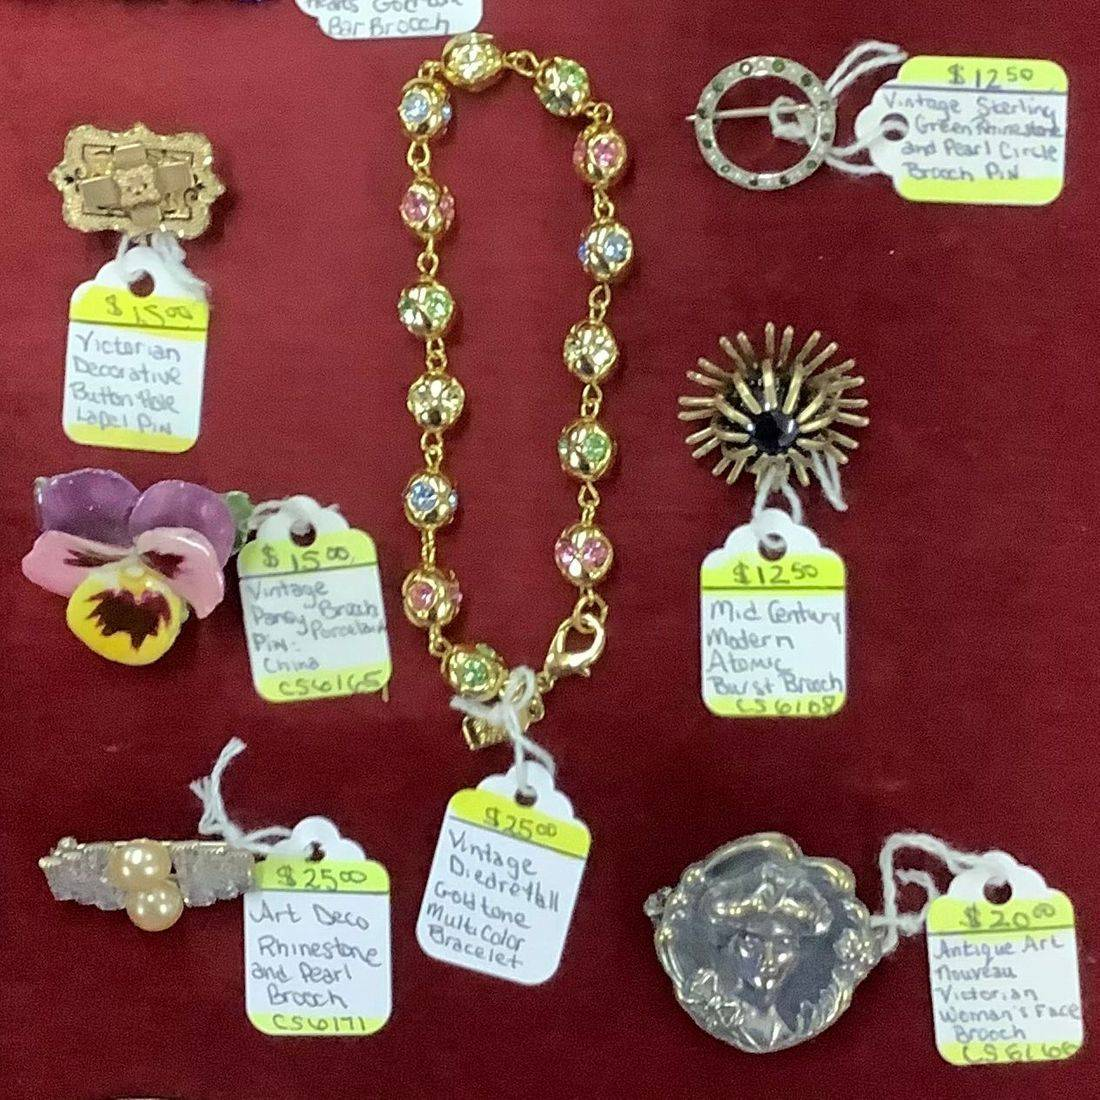 Antique and Vintage Brooches and Bracelet  $12.50 to $25.00